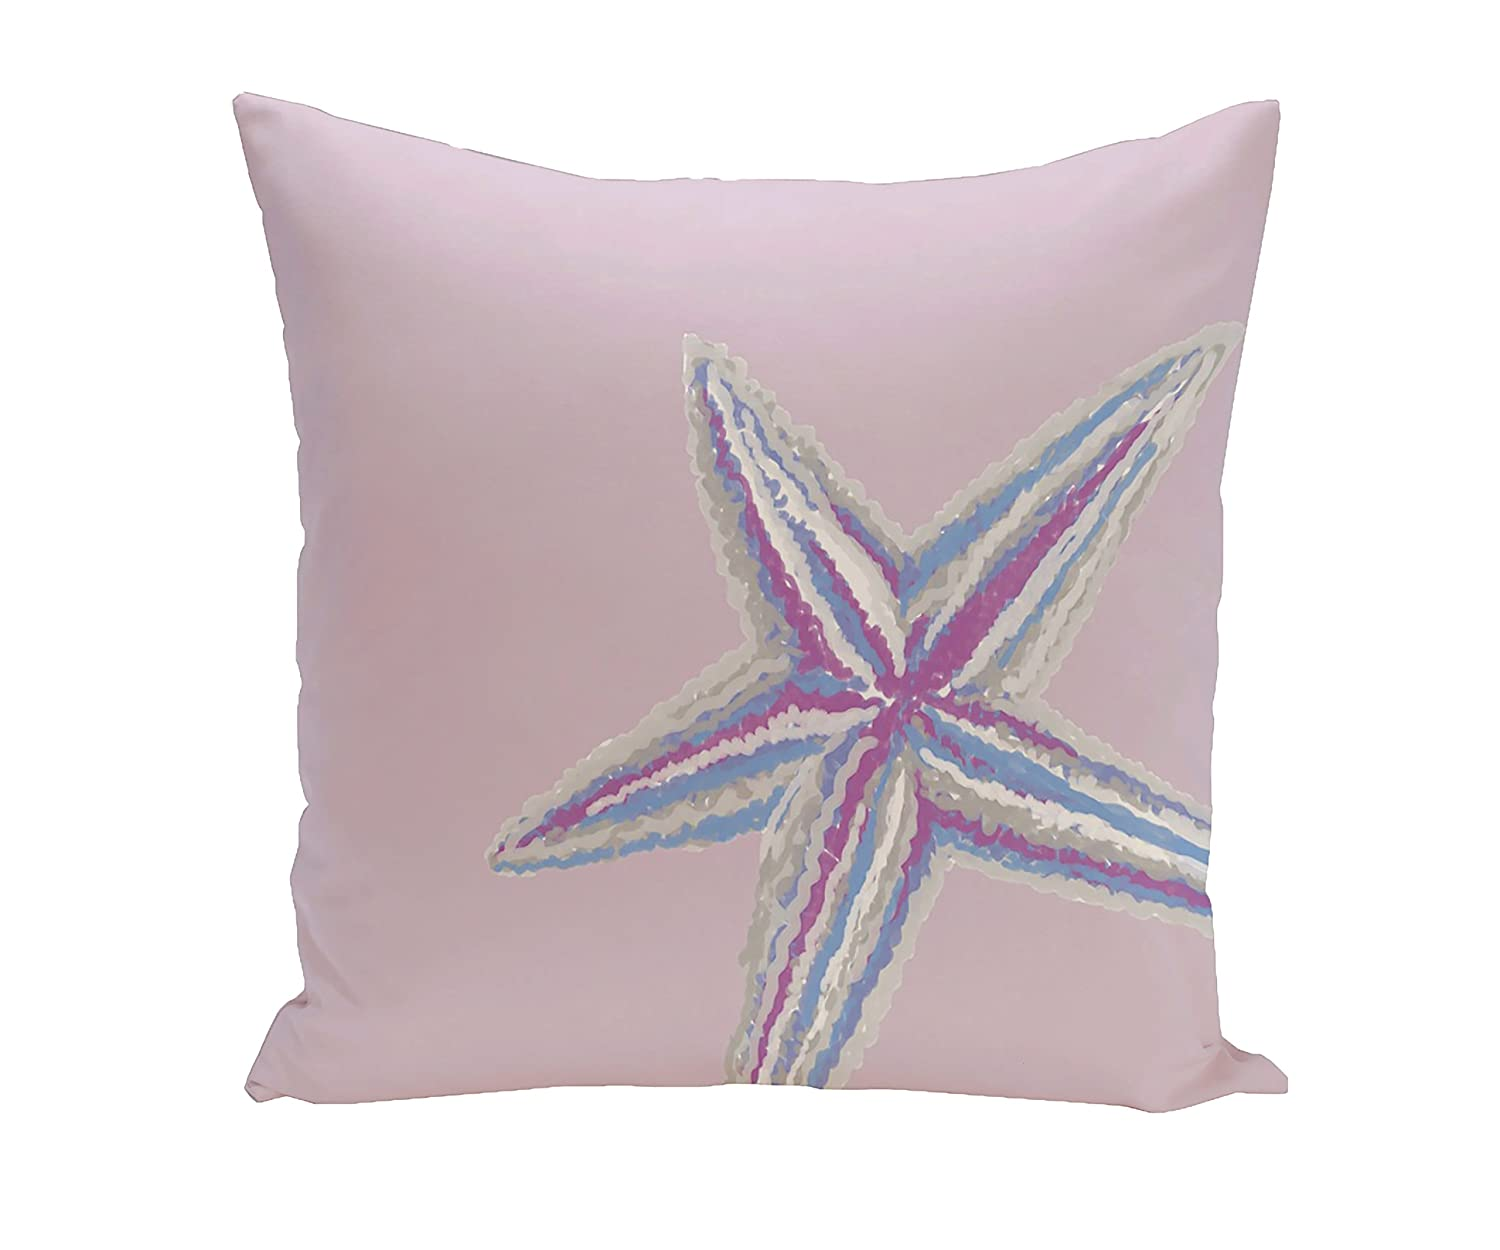 Heritage Lace Sea Star Indigo Shells 18 X 18 Oyster Pillow Cover